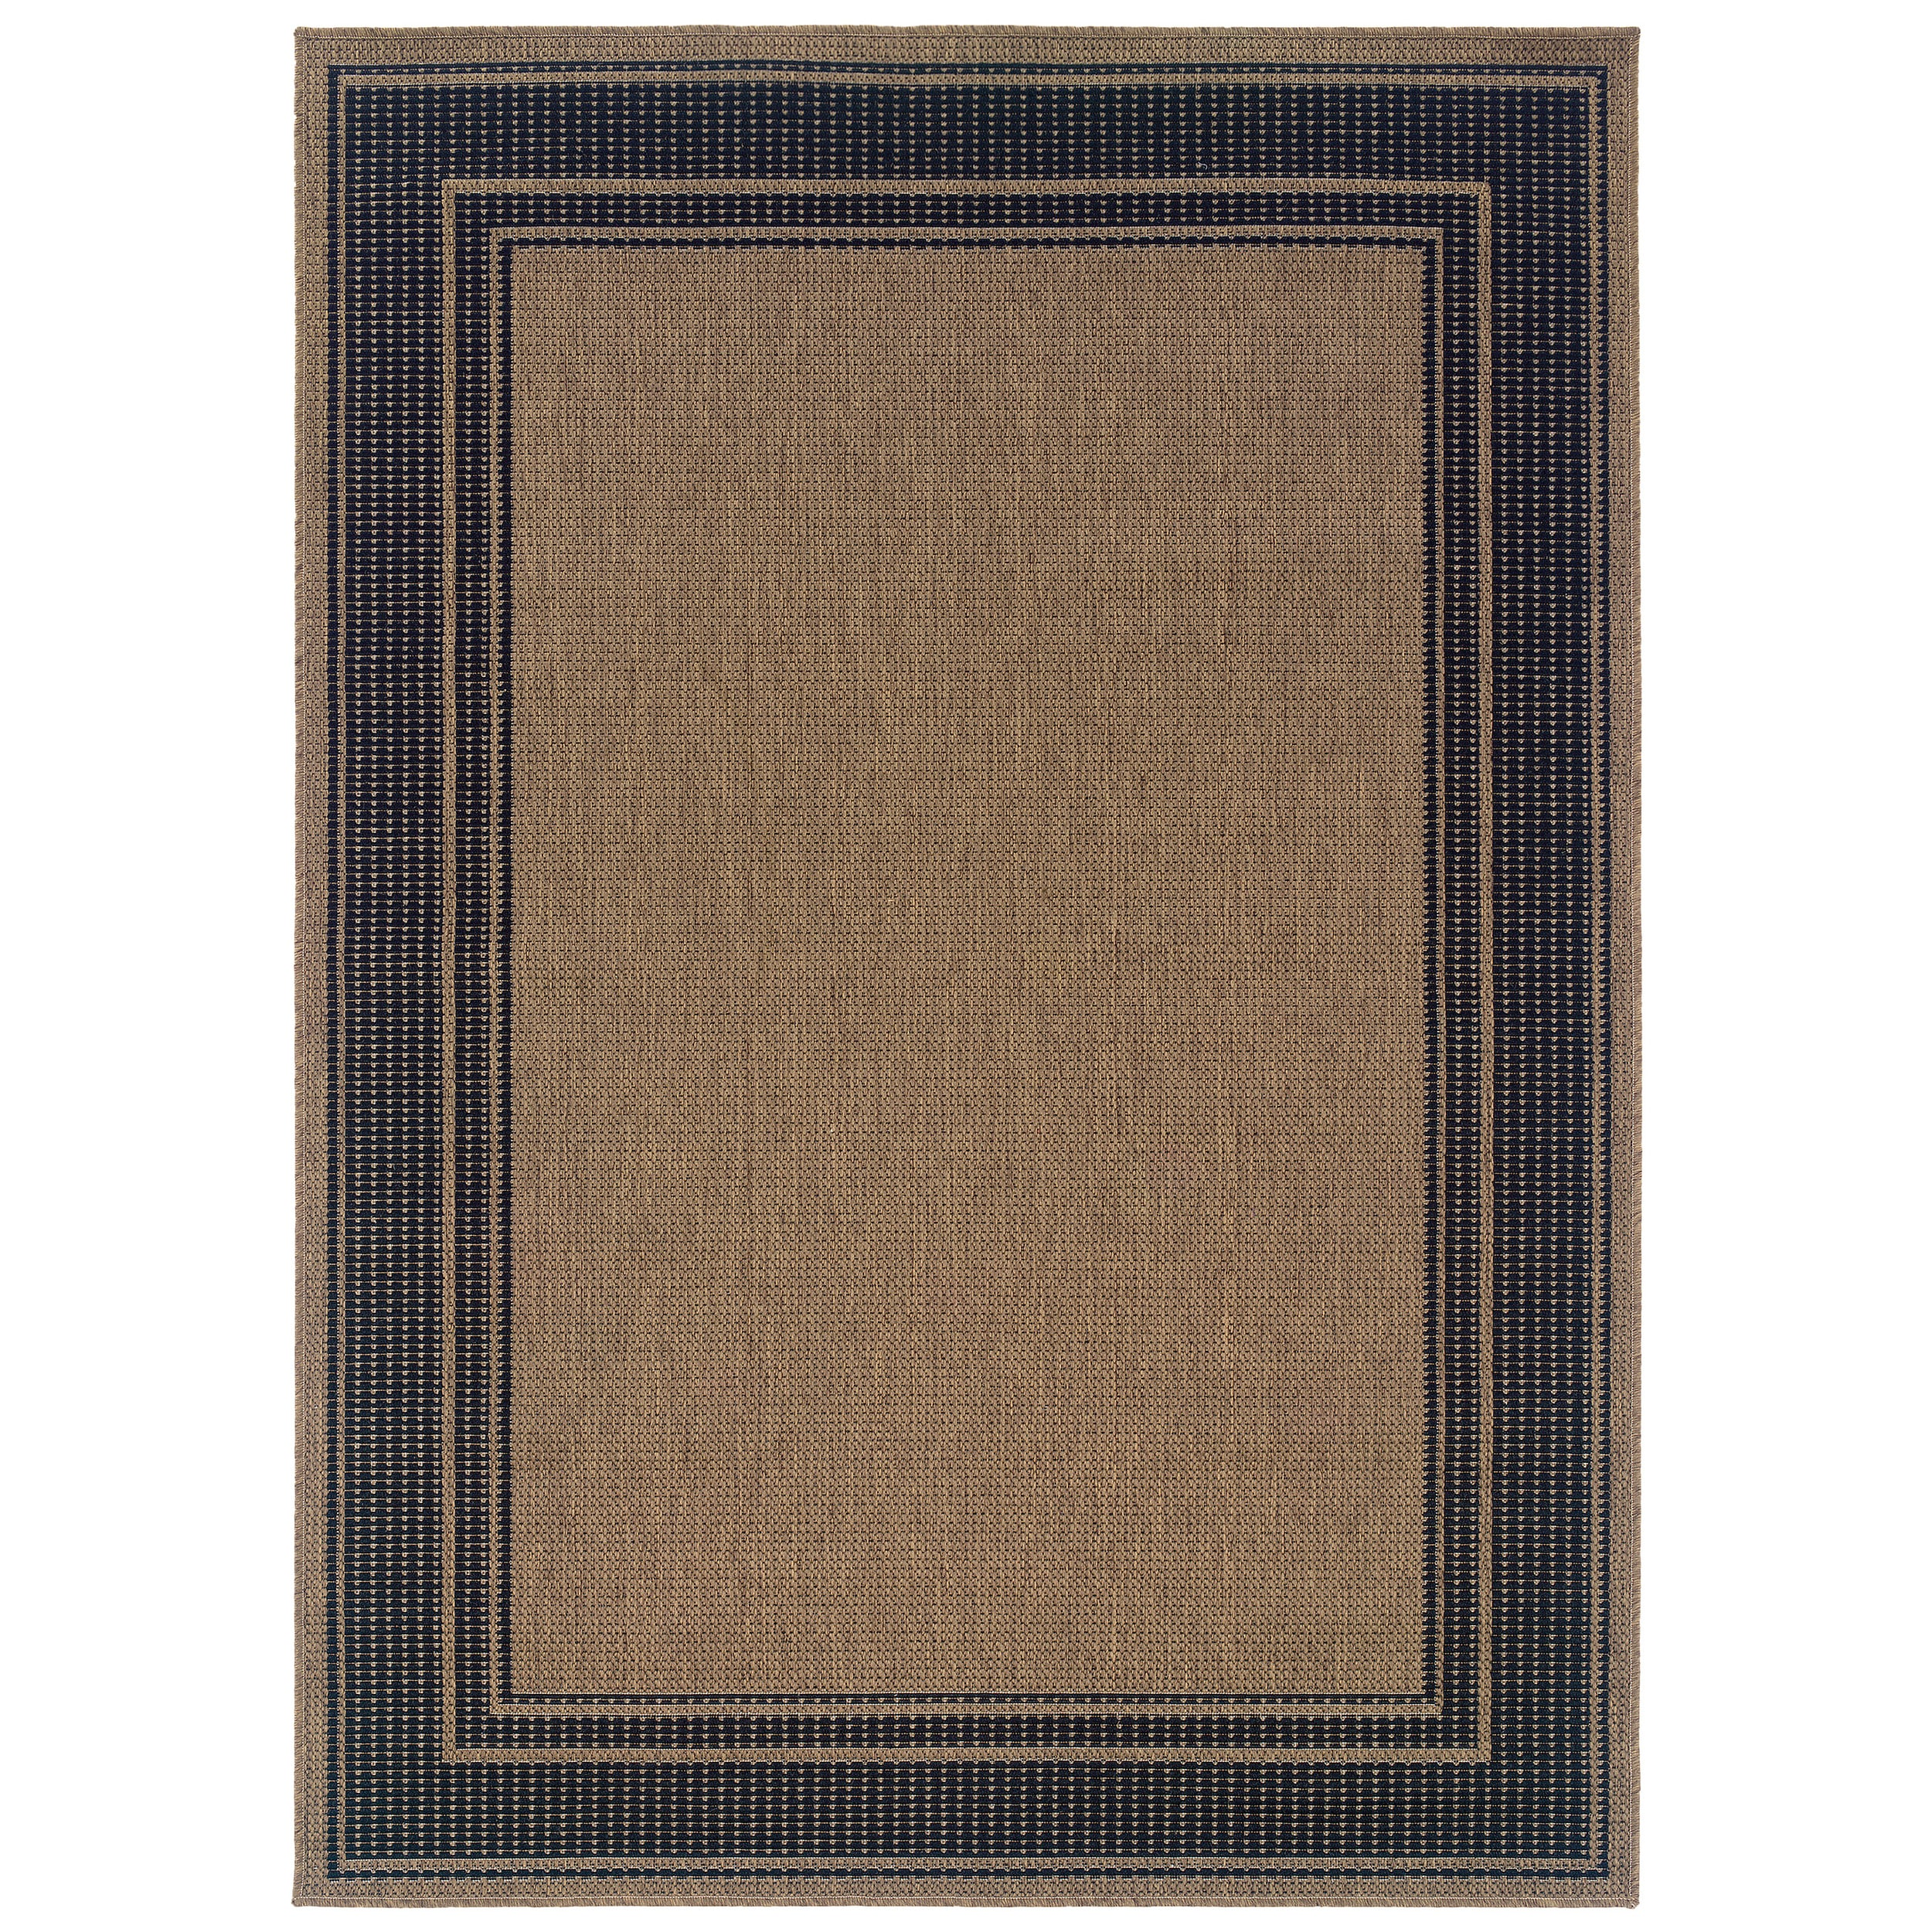 Indoor Amp Tan Black Outdoor Area Rug 8 X 10 Free